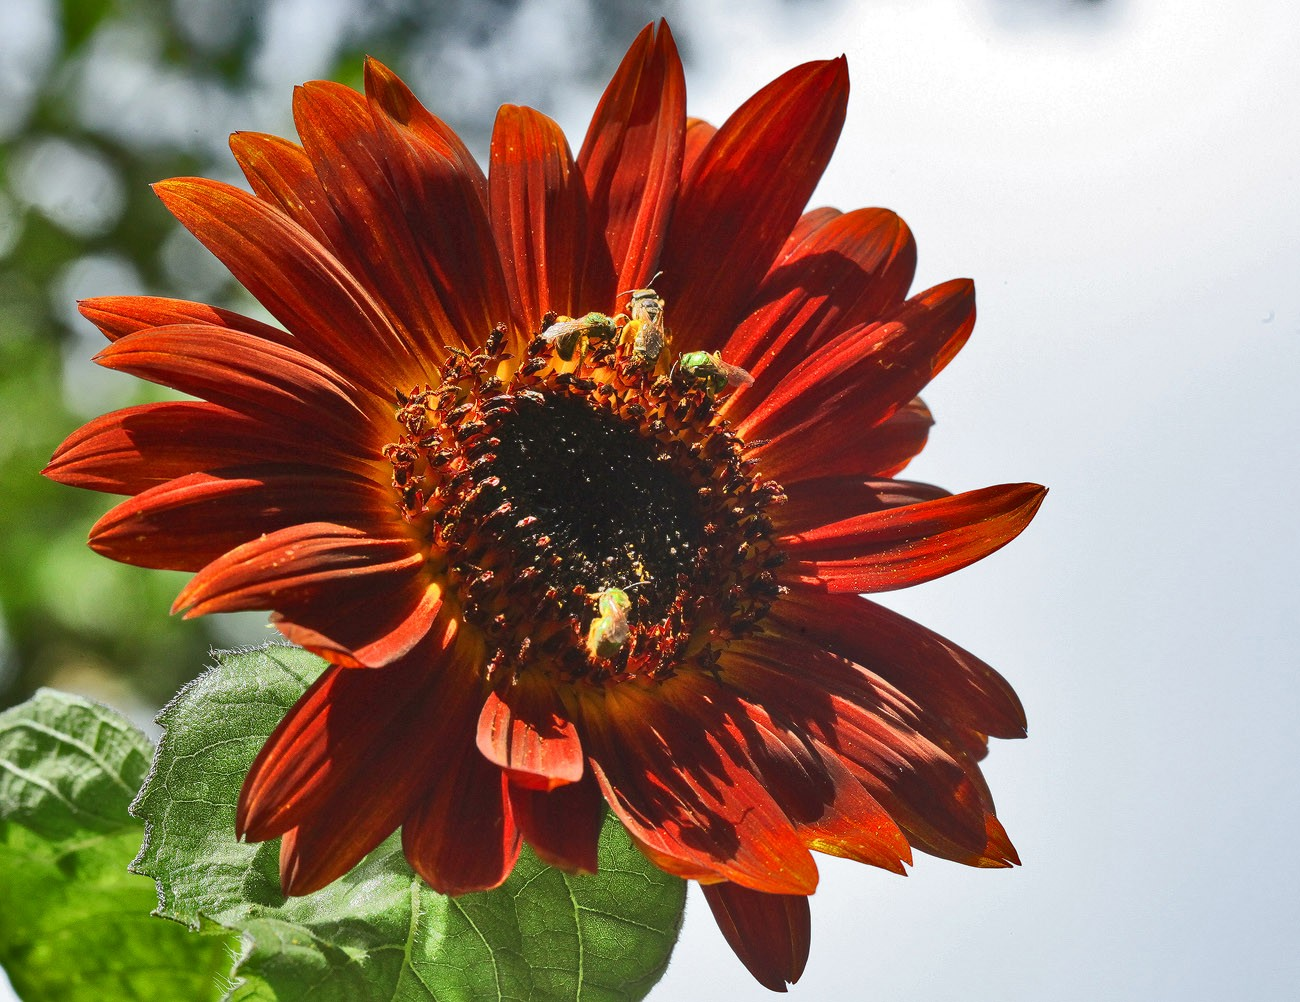 not your ordinary sunflower img aw author sava gr gregory and verena